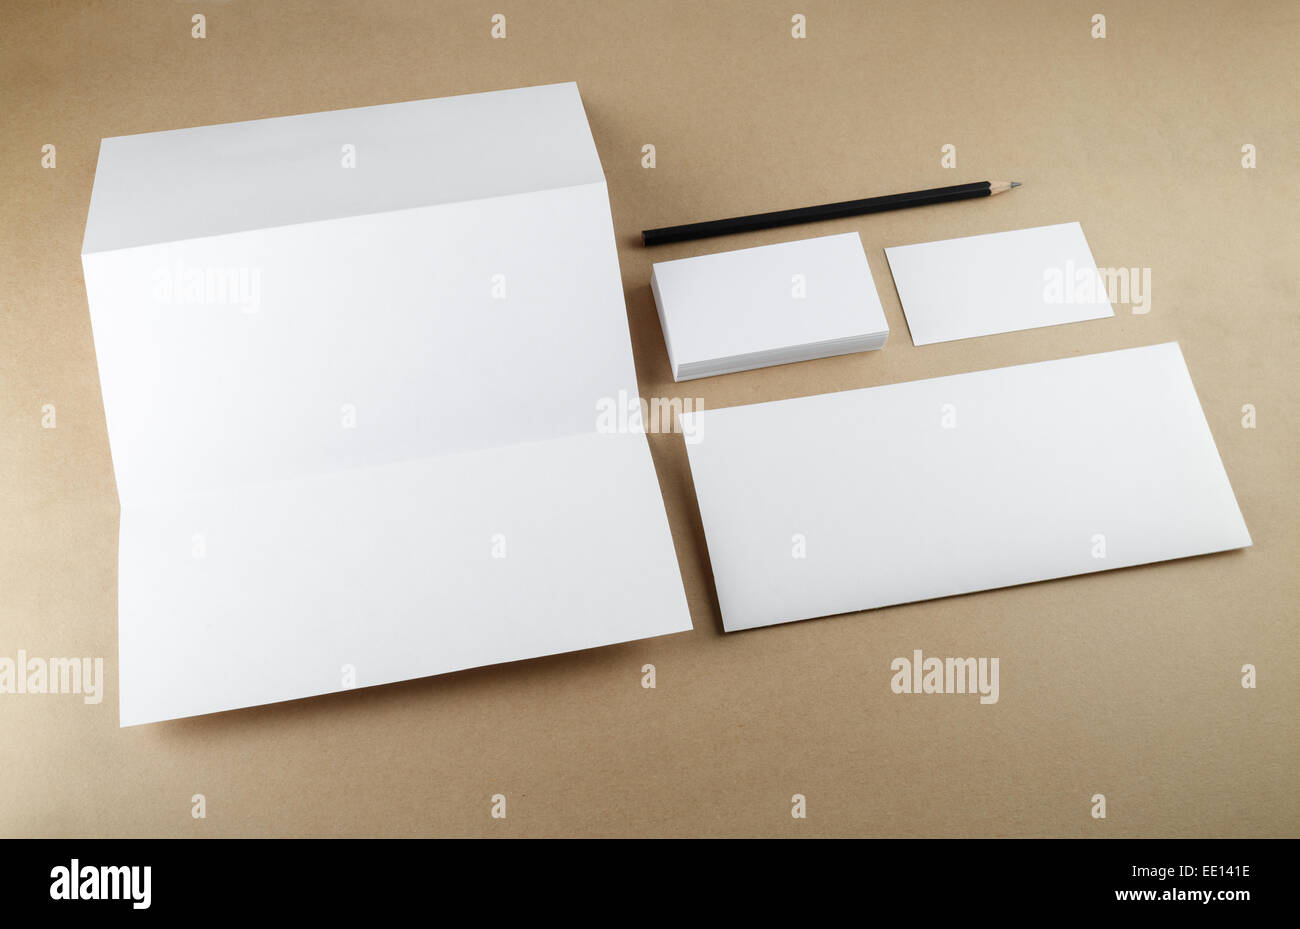 Blank stationery set on a table. Template for branding identity ...